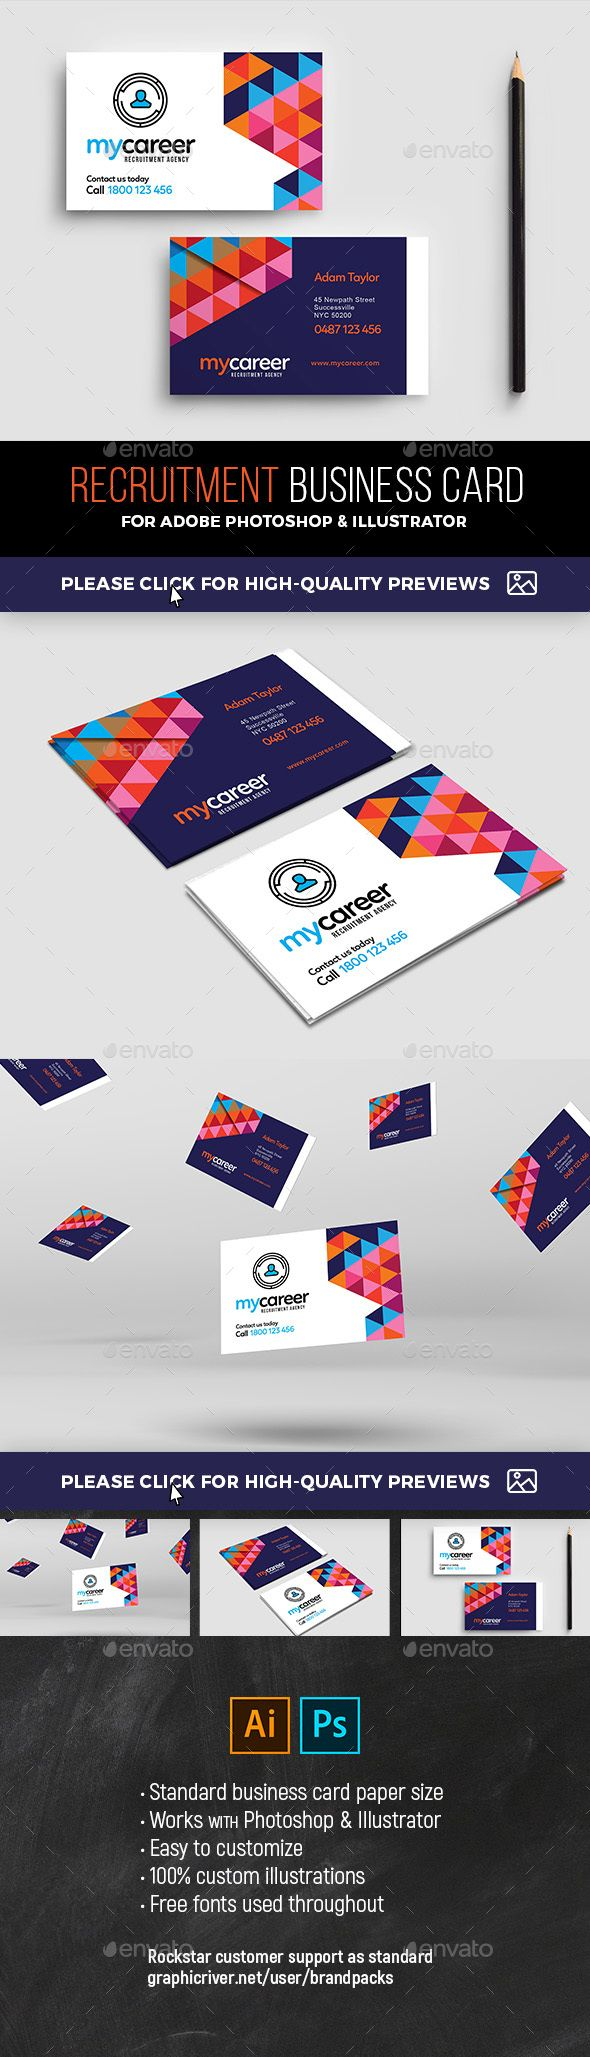 Recruitment Agency Business Card Template Agency Business Cards Illustration Business Cards Business Card Template